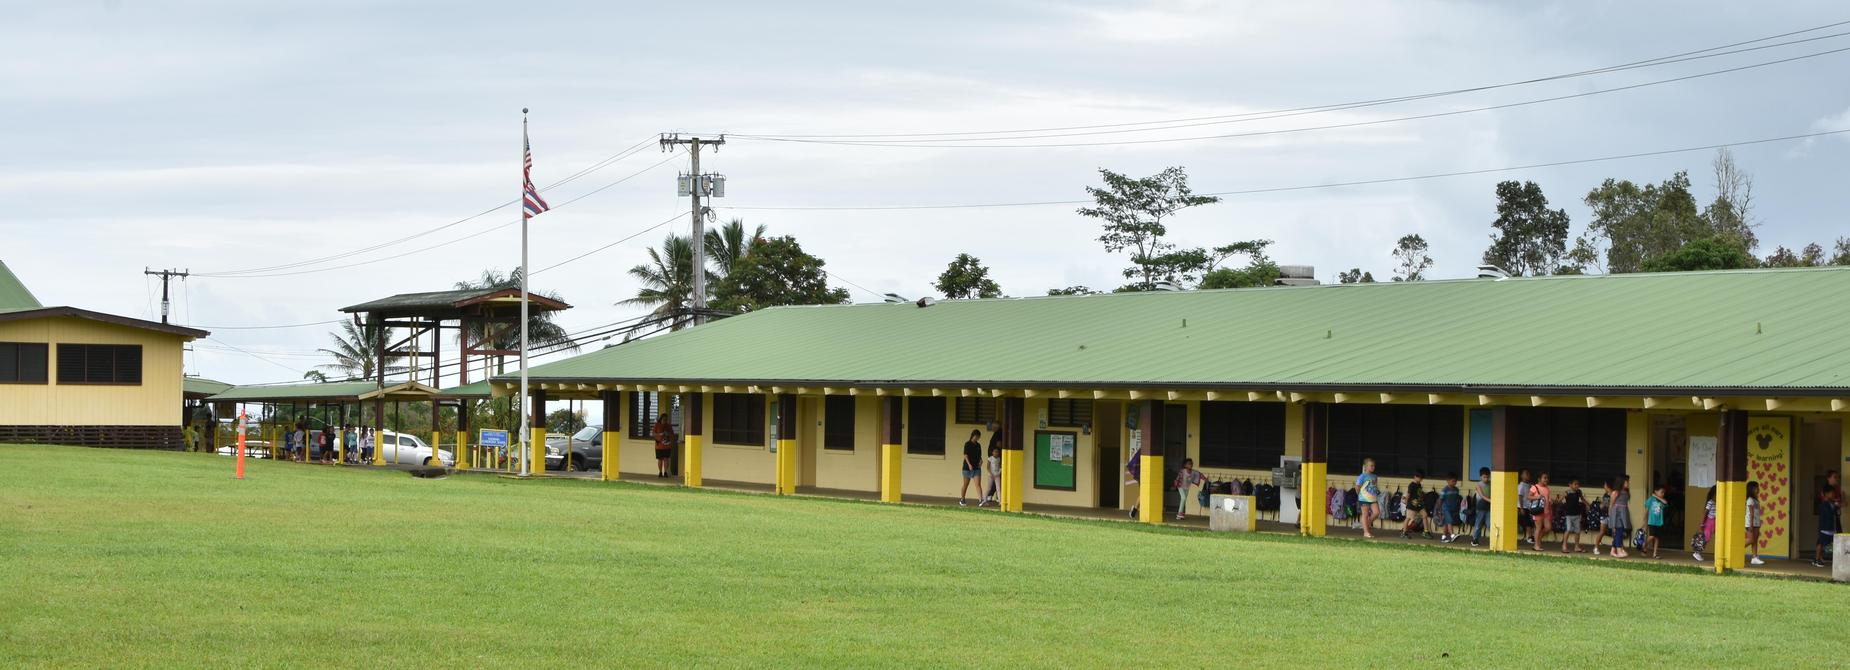 Photo of Kaumana Elem School looking from the Play ground to the Office